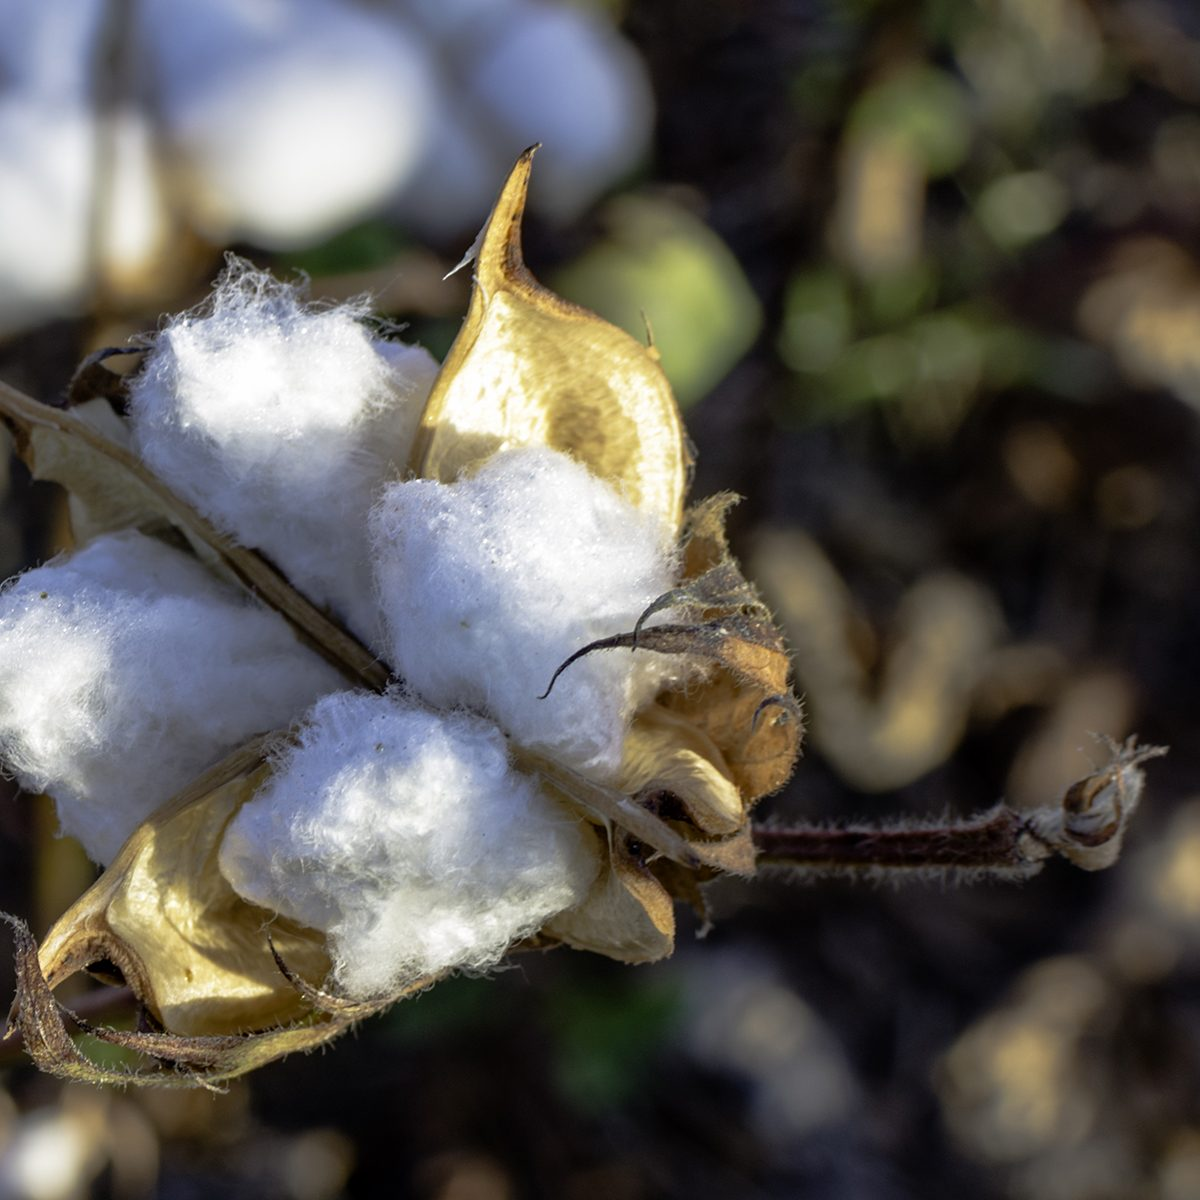 Close up of ripe cotton ball in field